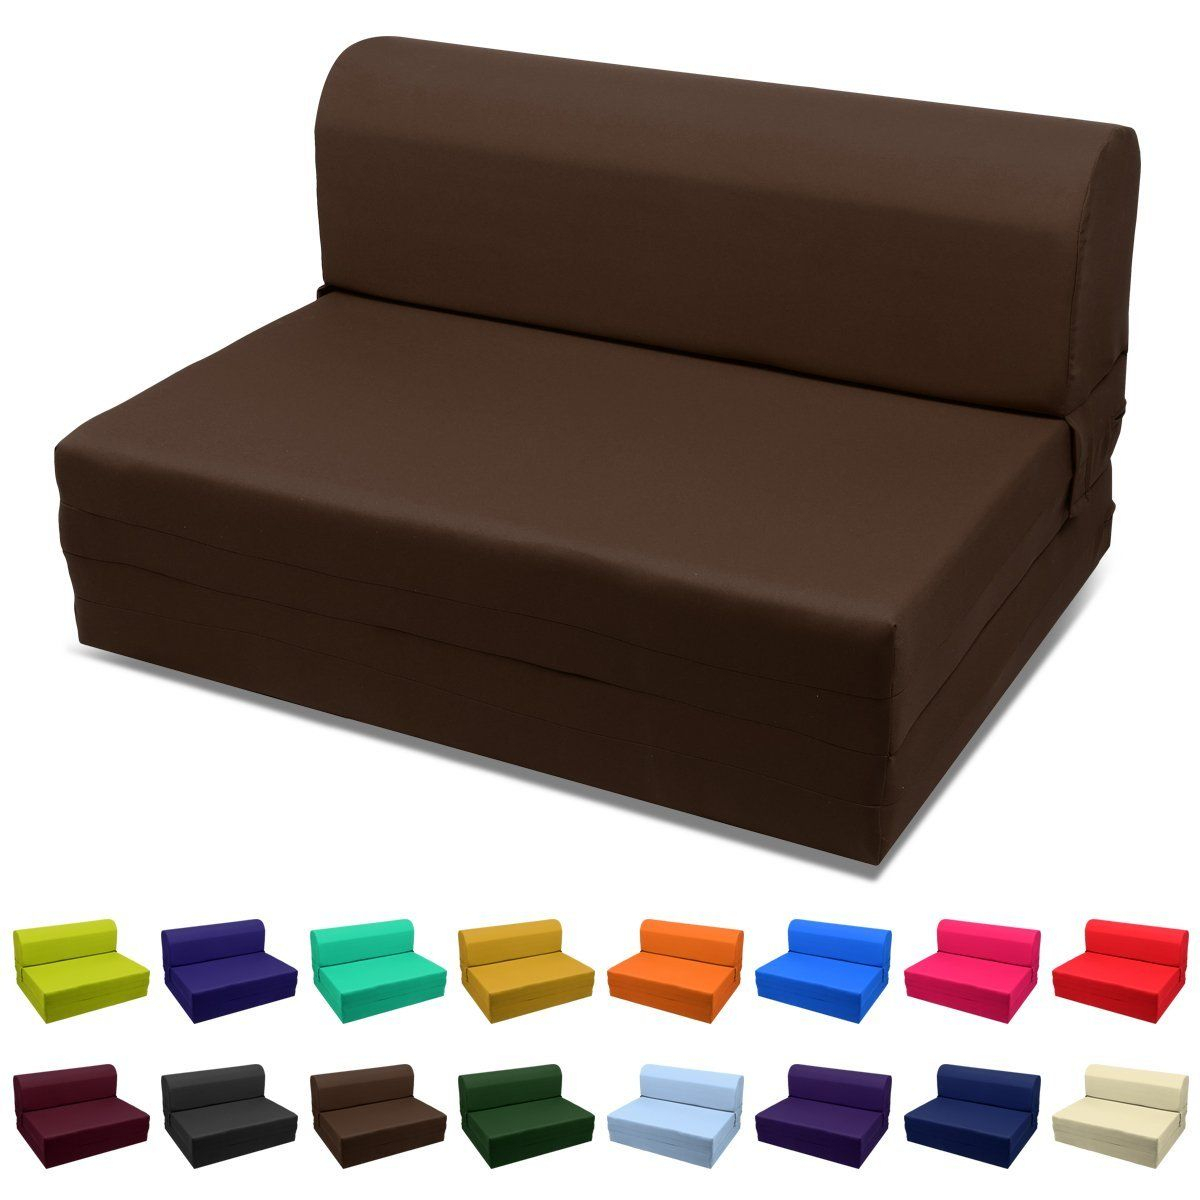 Magshion Futon Furniture Sleeper Chair Folding Foam Bed With Regard To Onderdonk Faux Leather Convertible Chairs (View 9 of 15)